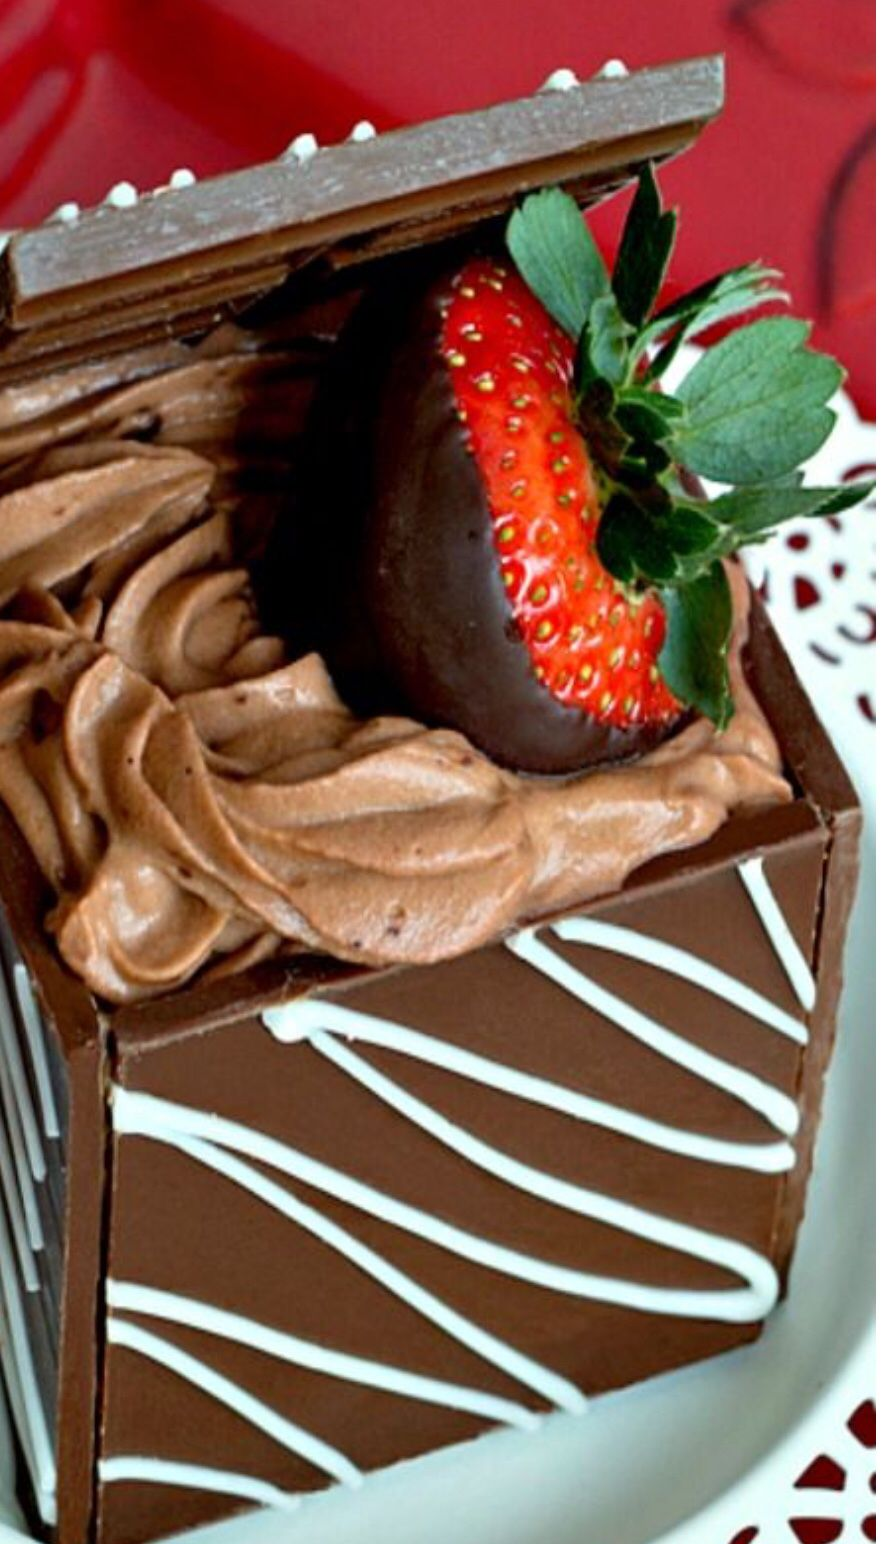 Chocolate box hrana pinterest cocina f cil for Cocina facil y rica